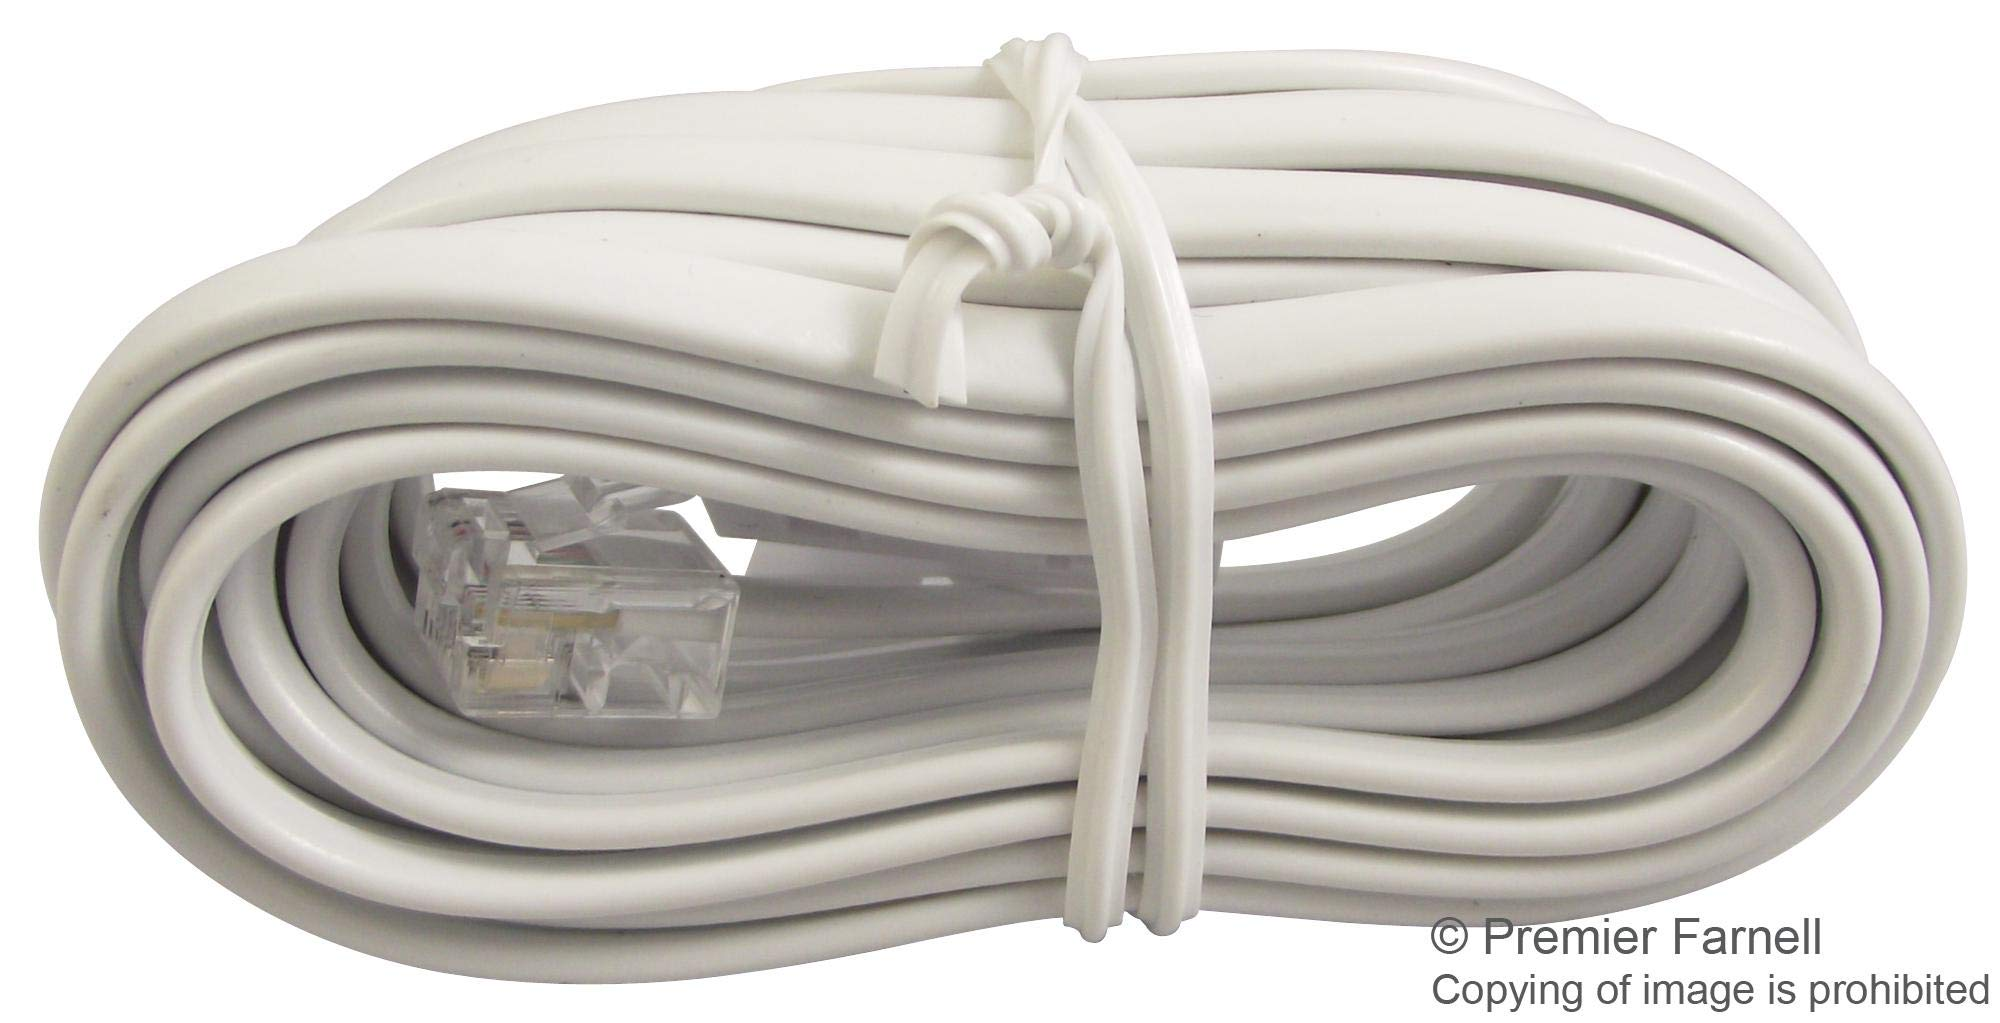 31040R - Telephone Modular Cable, BT431A Plug to RJ11 Plug, 9.8 ft, White (Pack of 50) (31040R)